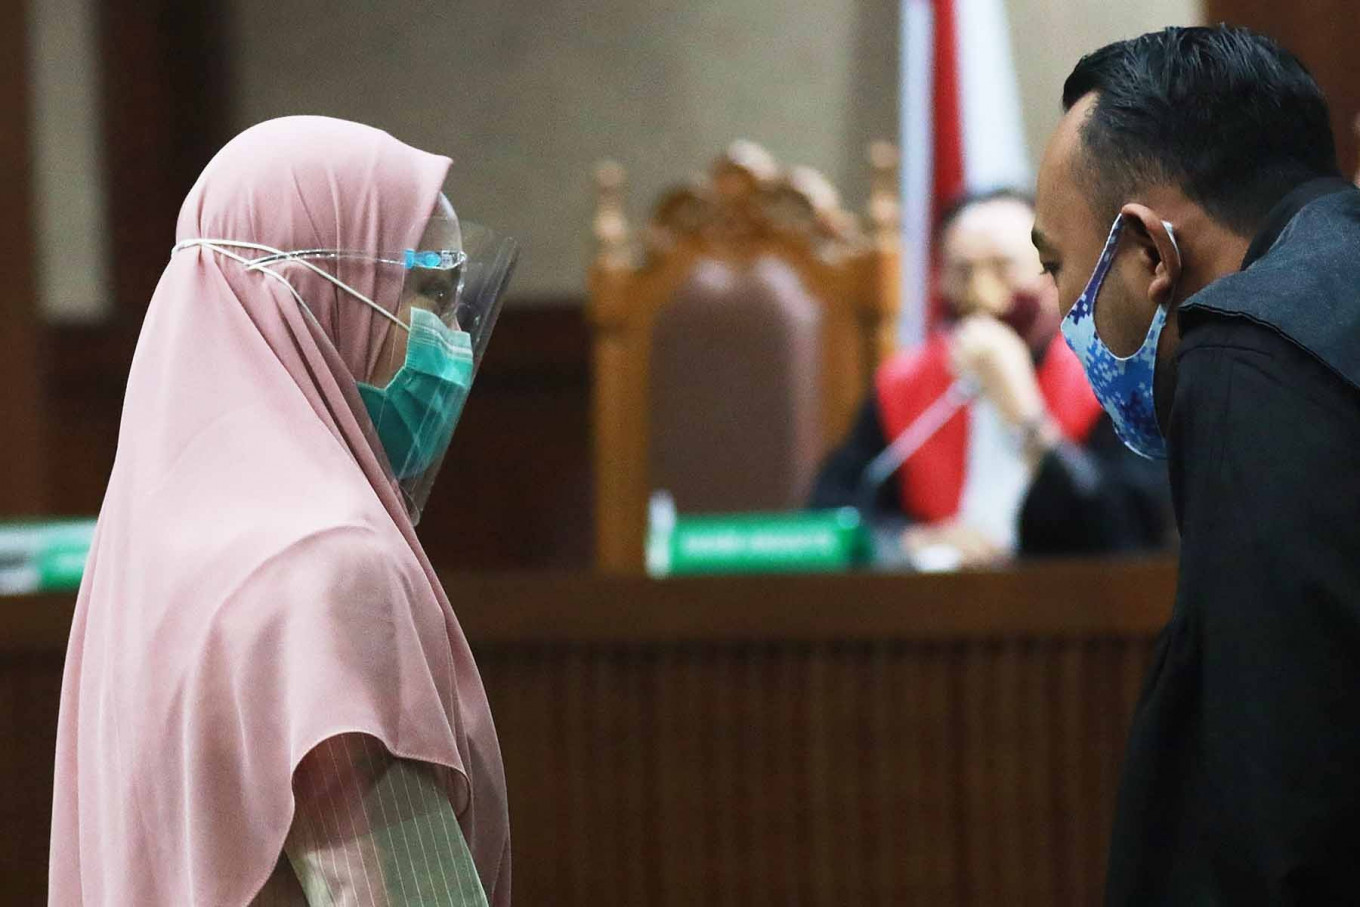 Pinangki Sirna Malasari has a conversation after a hearing in the Jakarta Corruption Court on Sept. 23. Prosecutor Pinangki is accused of accepting bribes amounting to US$500,000 from graft convict Djoko Soegiarto Tjandra for conspiring to secure an acquittal for him from the Supreme Court. JP/Dhoni Setiawan